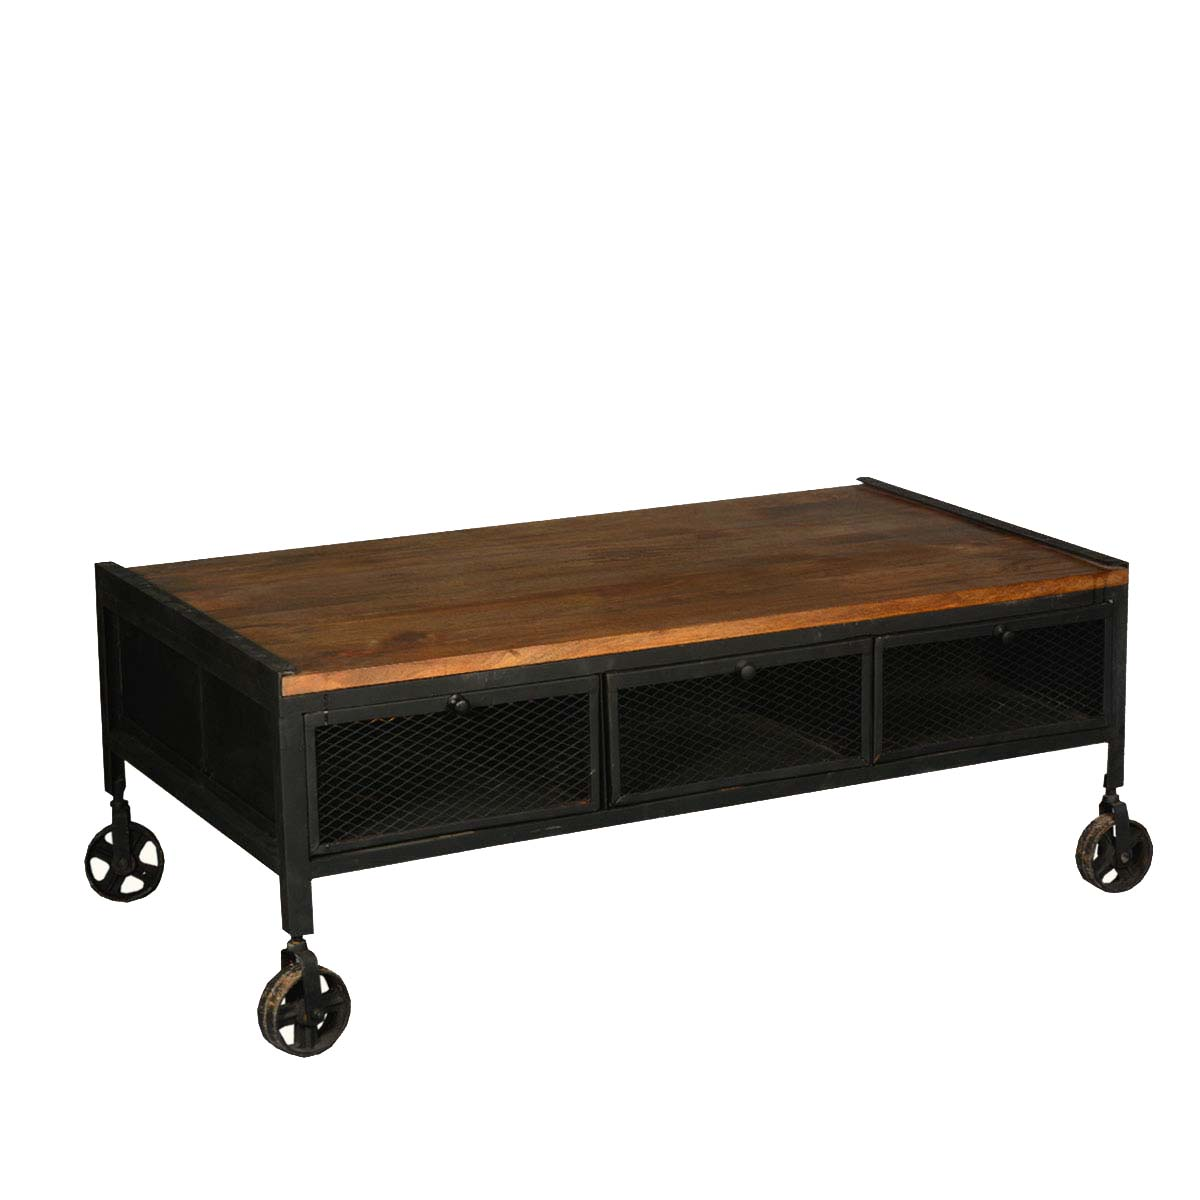 industrial rustic reclaimed wood & iron rolling double x coffee table